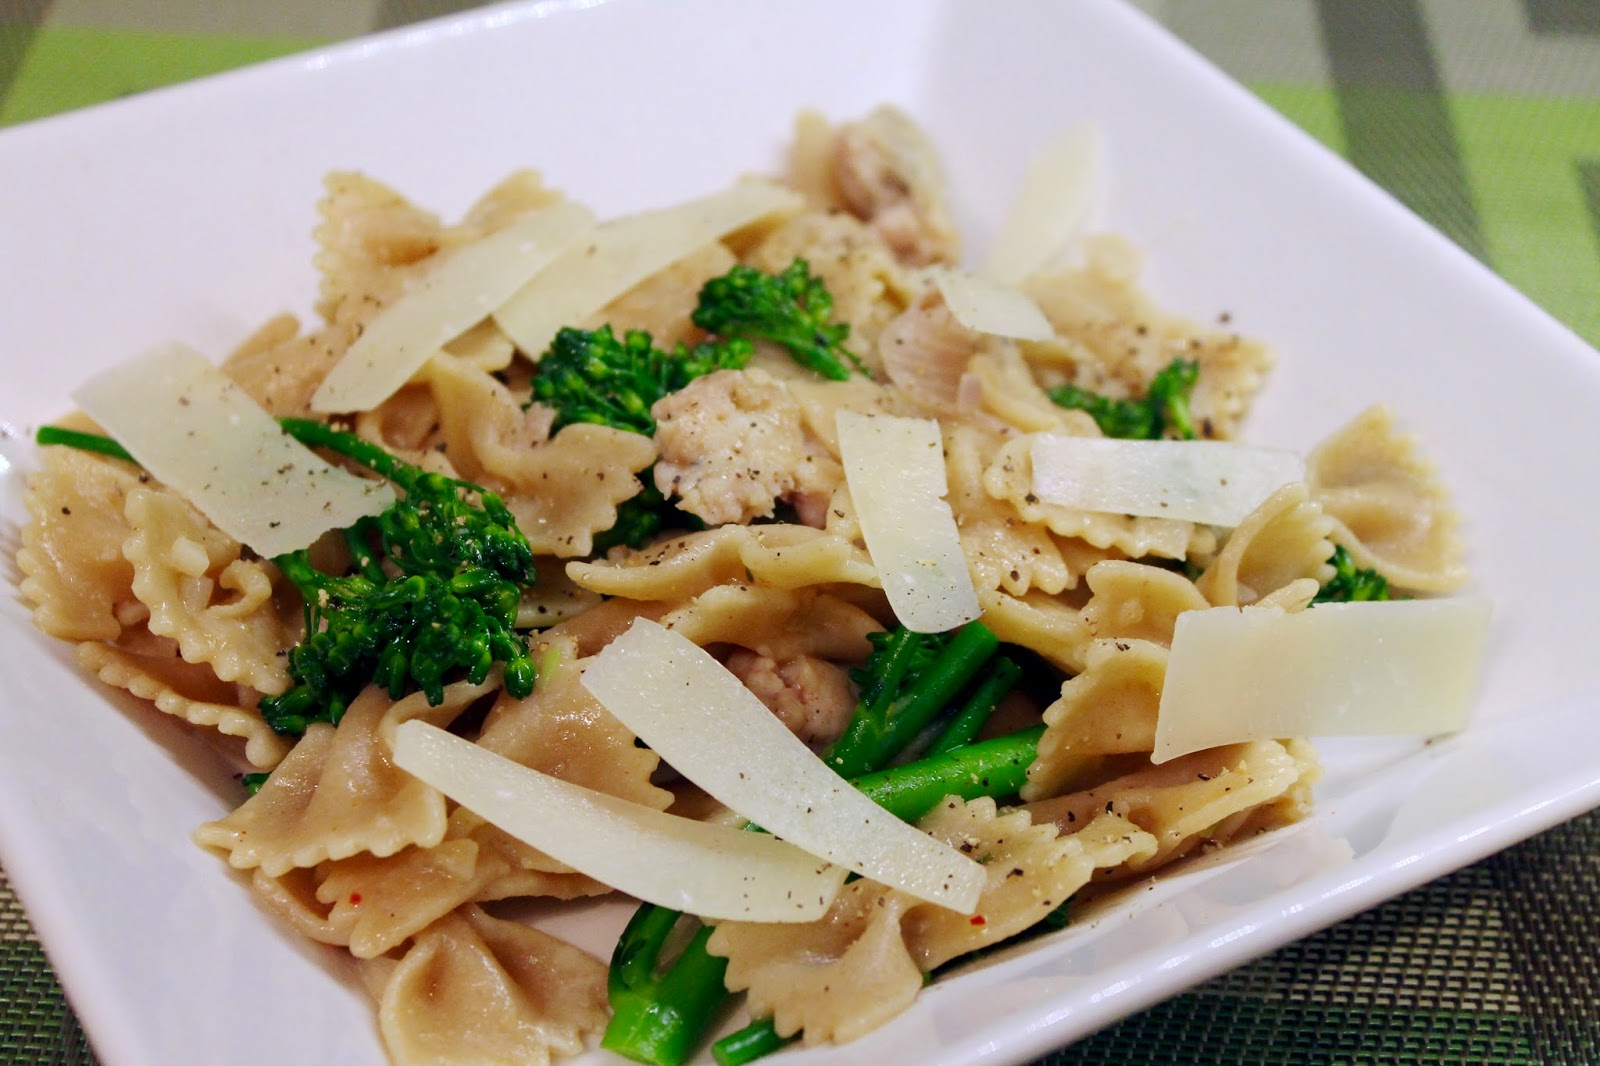 Whole Wheat Pasta with Sausage and Broccolini